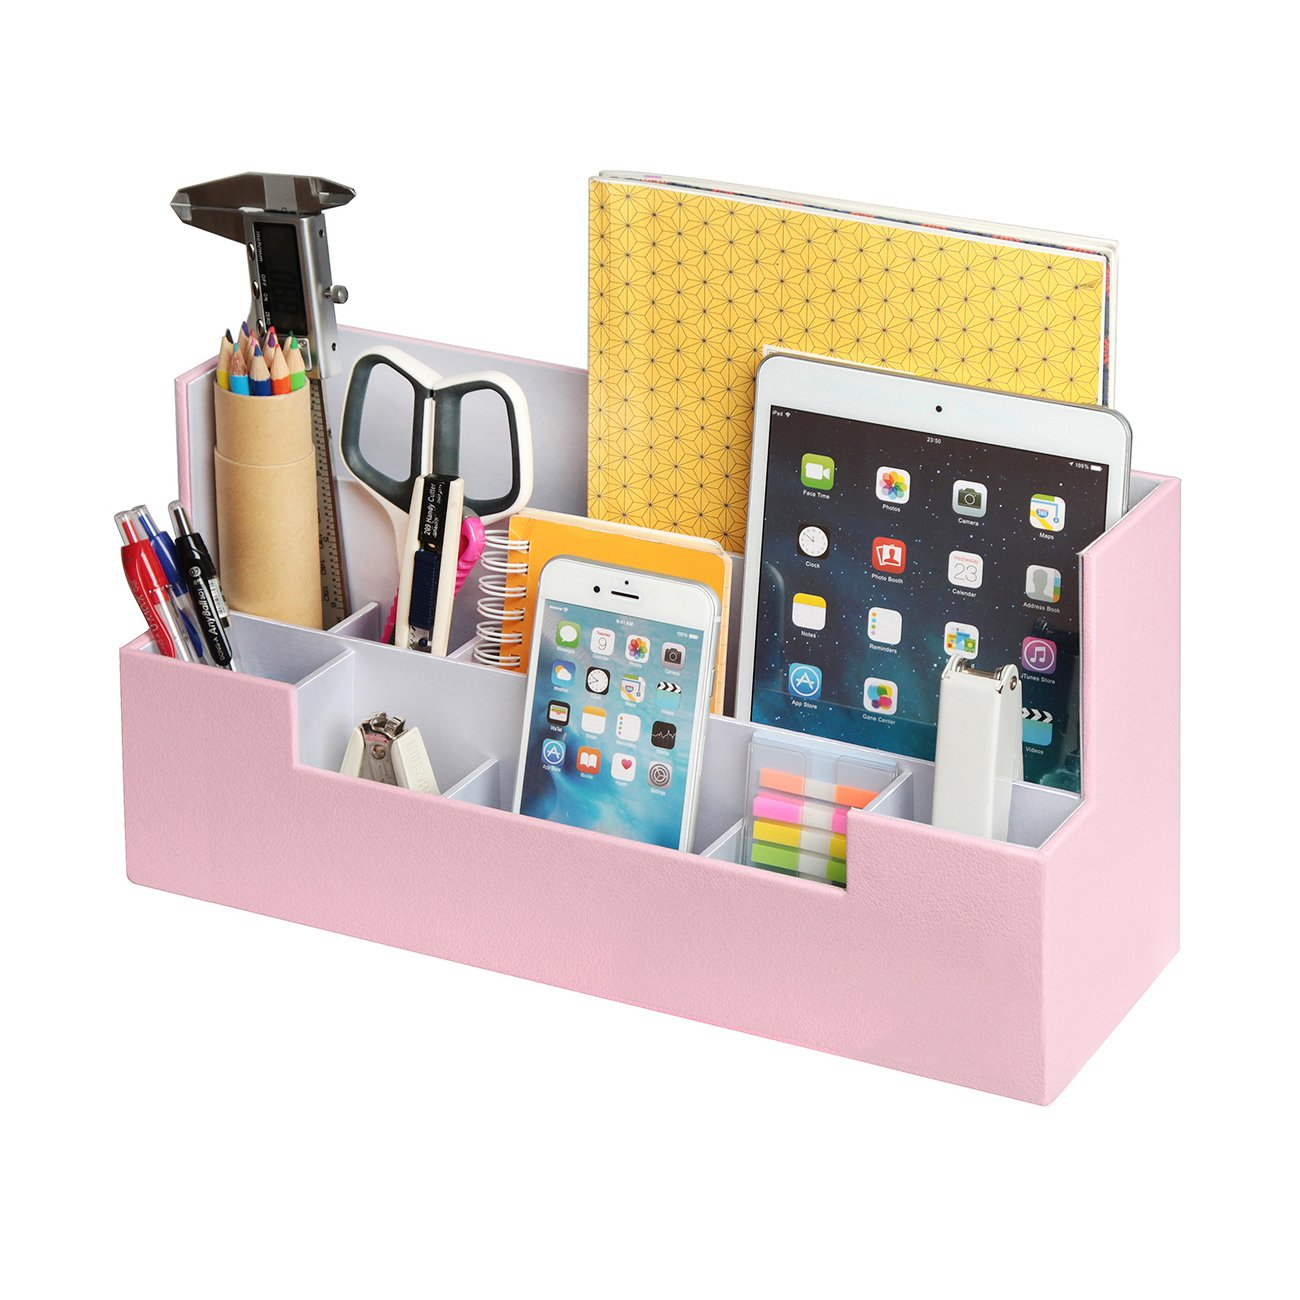 JackCubeDesign Leather Office Desk Stationery Organiser Supplies Storage  Box Case Caddy Tray Cosmetic Display Holder Phone Tablet Stand(Pink, 30 x